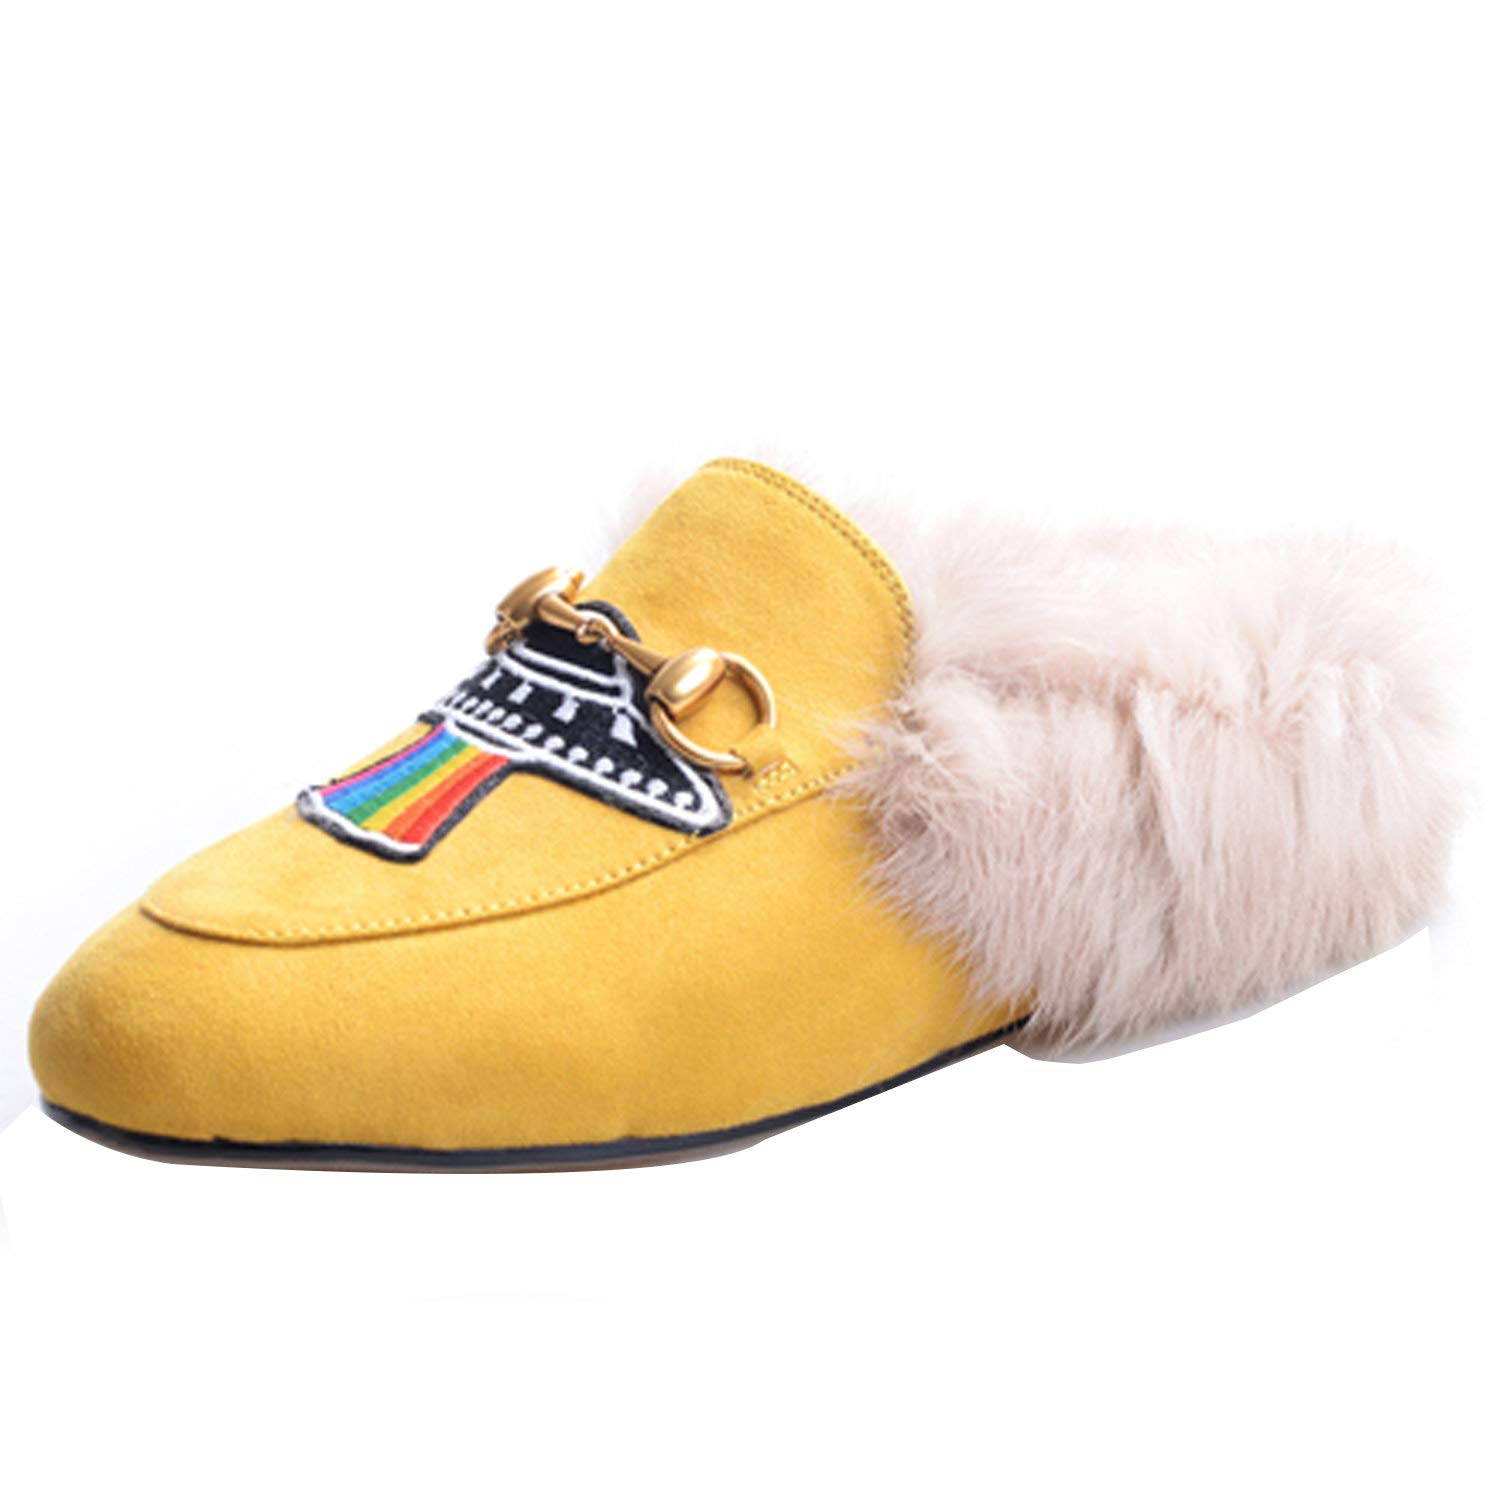 Yellow HEETIST Backless Faux Fur Mules for Women, Round Toe Yellow Suede Flats Outdoor Slipper Flats shoes